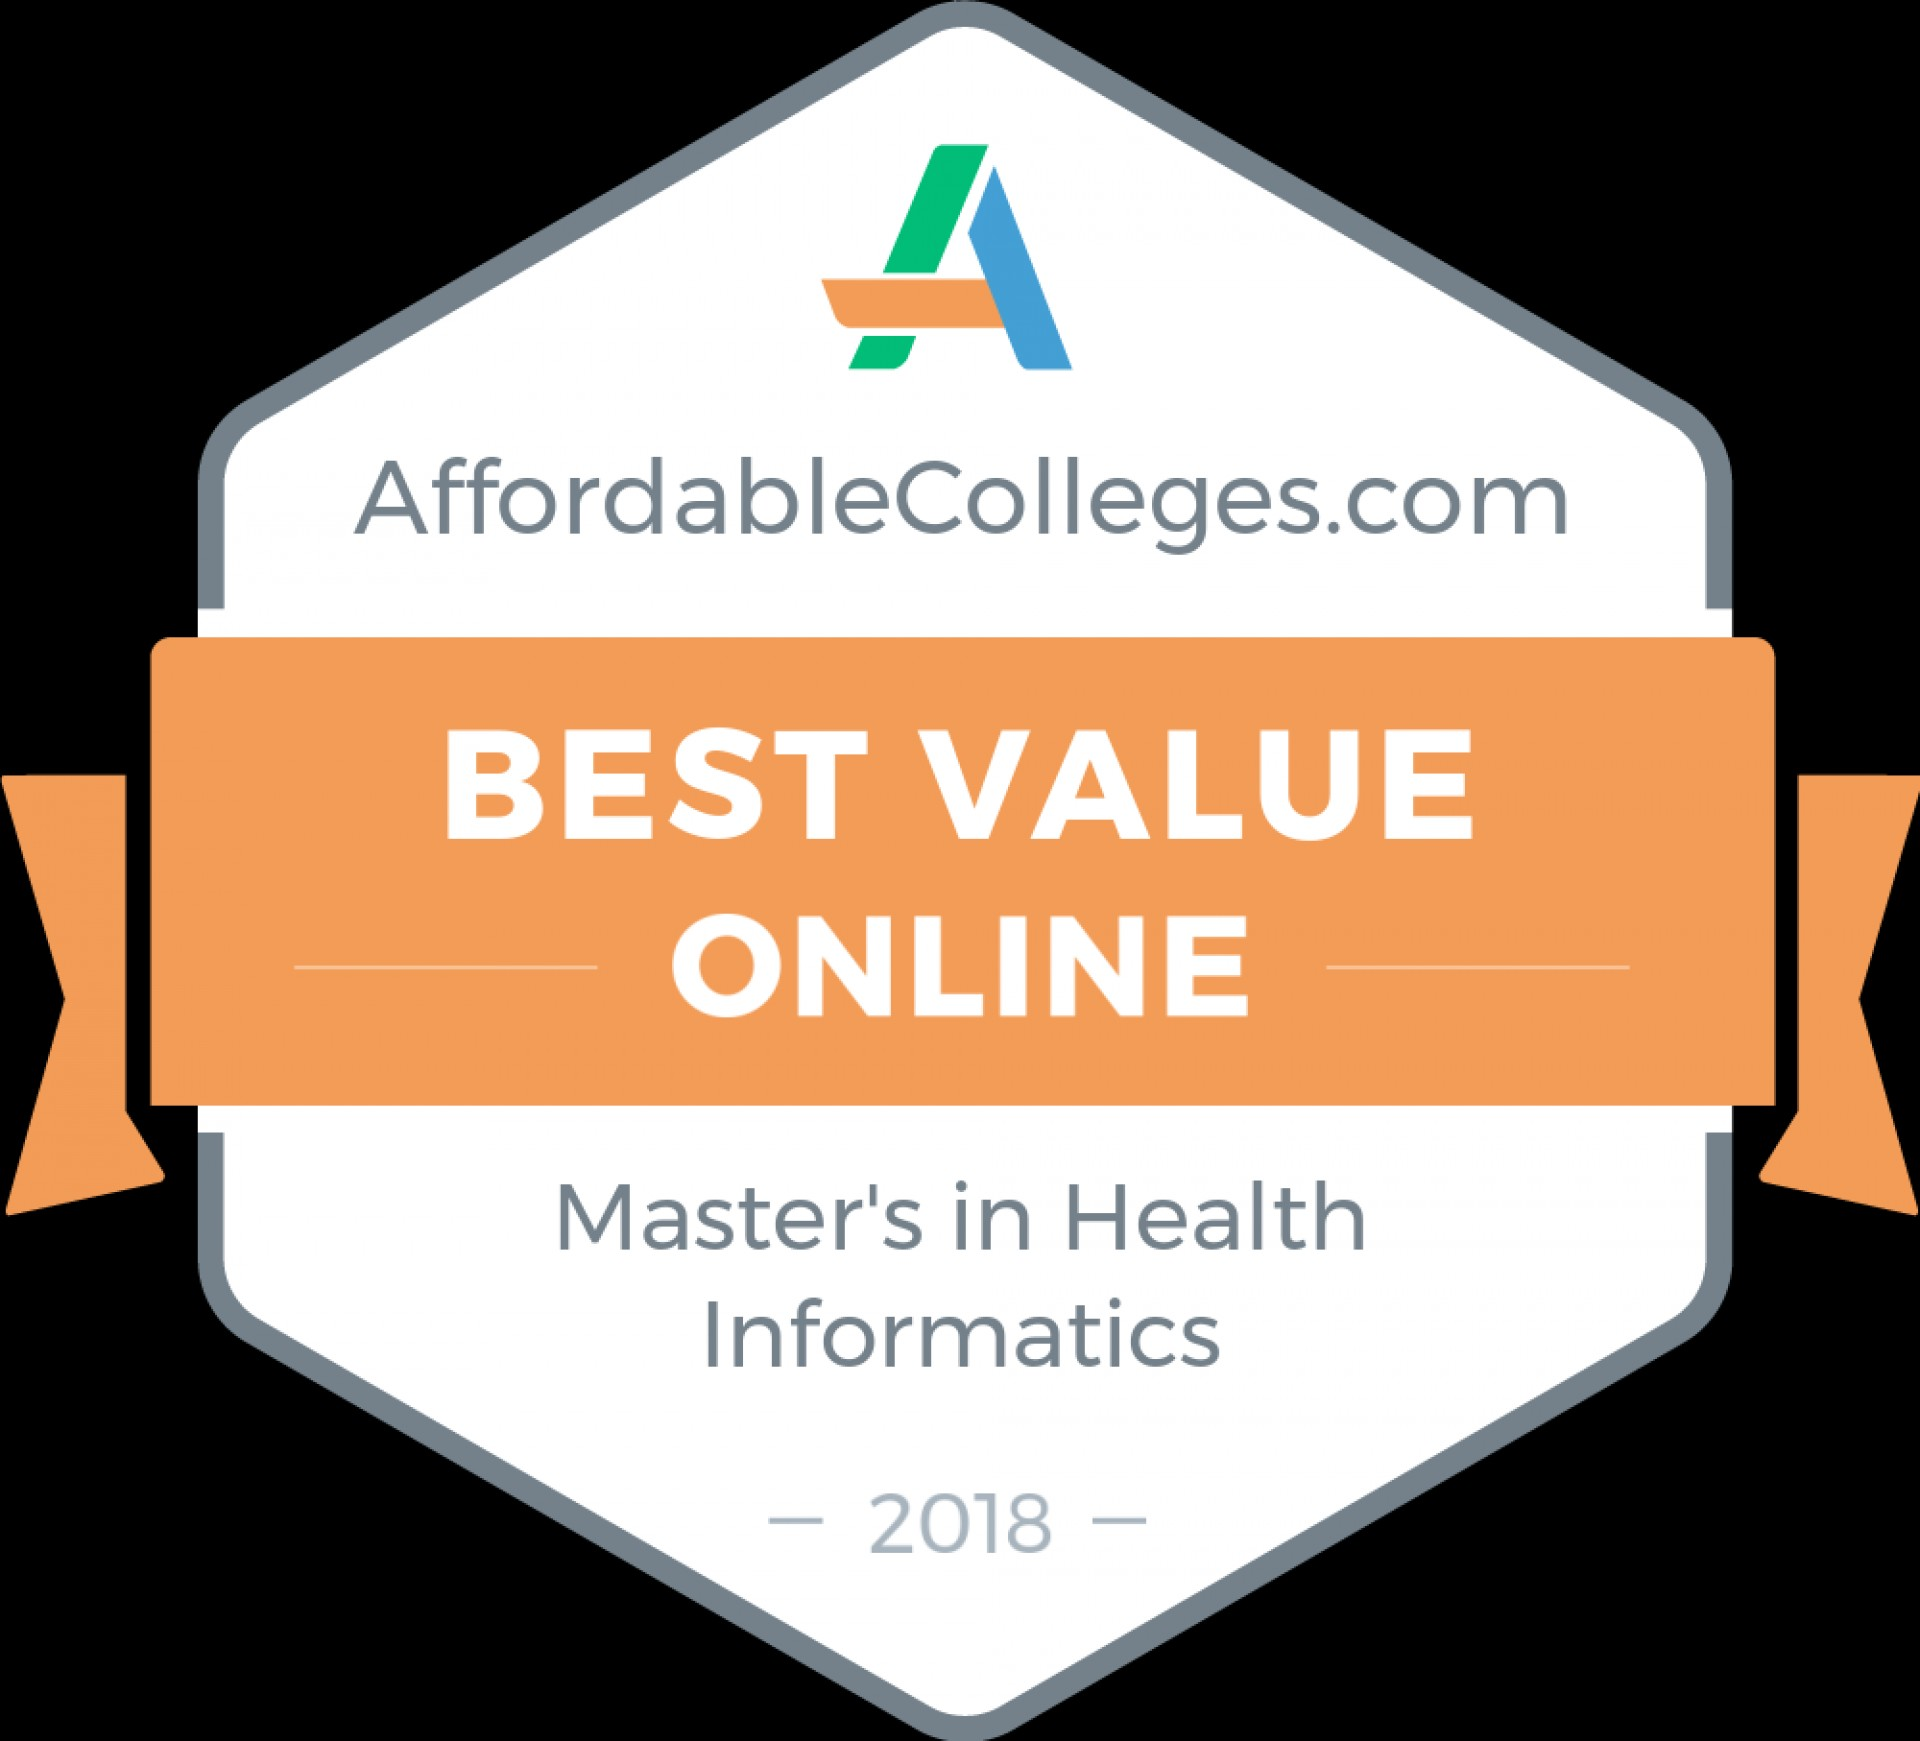 015 Health Informatics Research Paper Topics Affordablecollegescom Type Stunning 1920